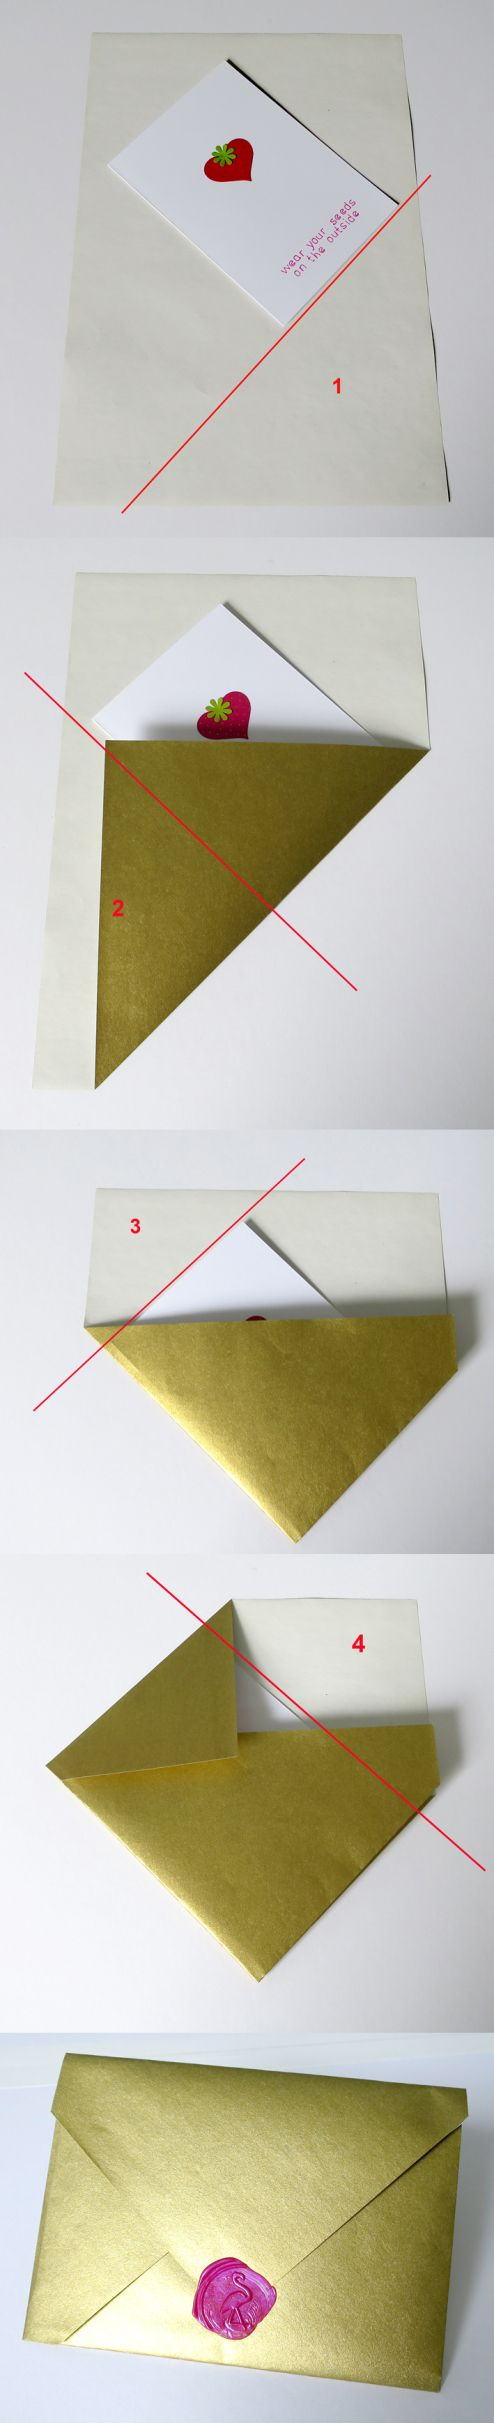 quick and easy diy envelope from A4 paper - no template or cutting needed